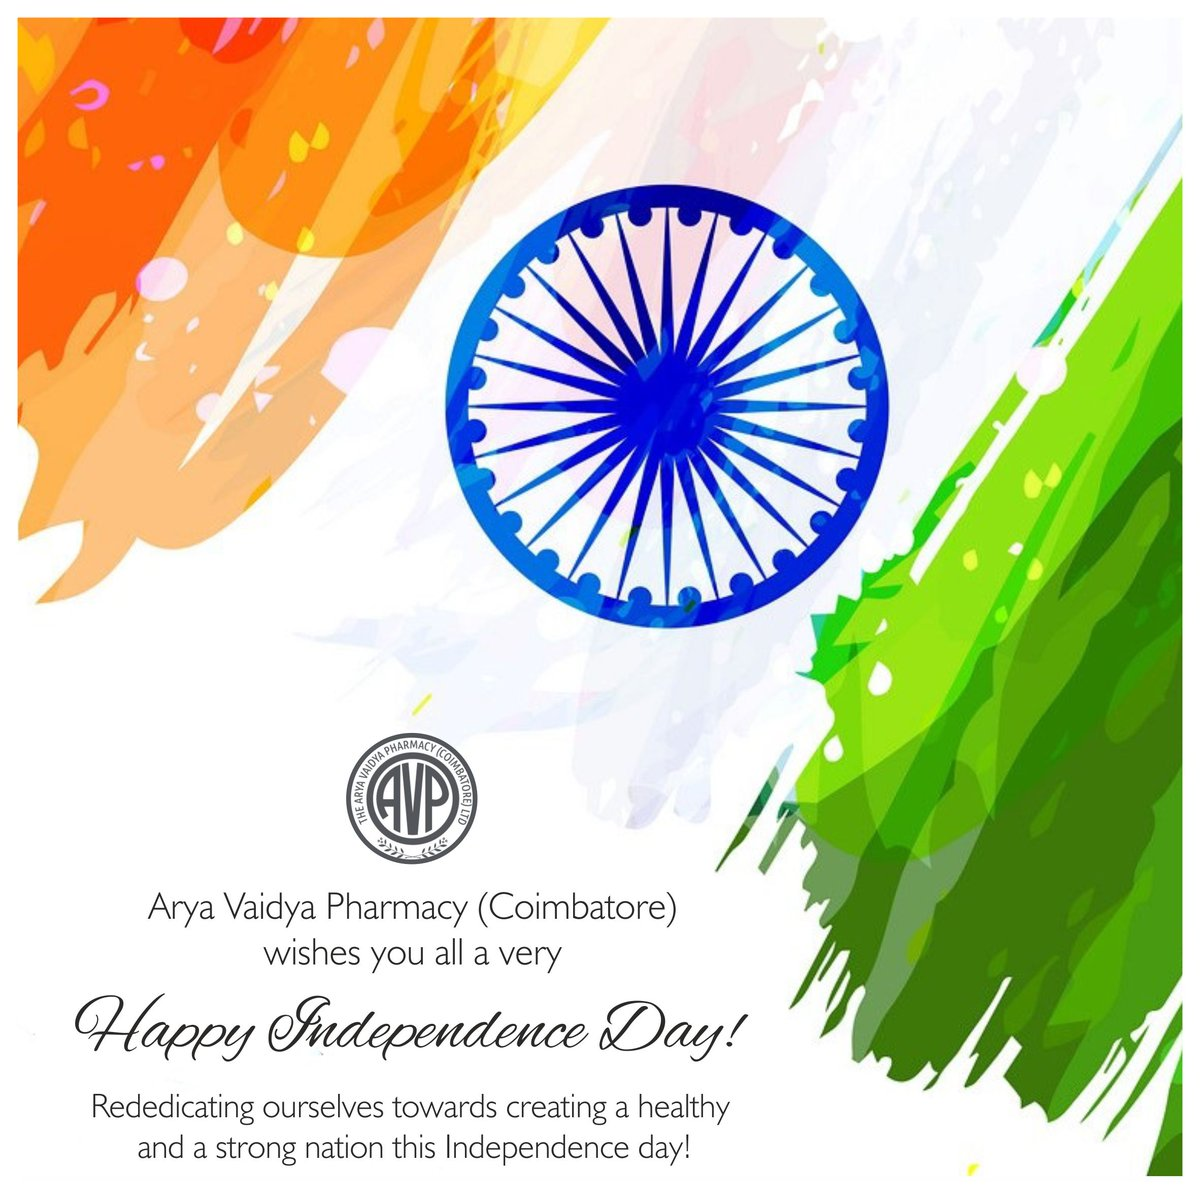 Happy Independence Day from all of us at AVP! We take this opportunity to rededicate ourselves in creating a healthy and a strong nation... #IndependenceDay2019 ceday2019 #IndependenceDayIndia #JaiHind